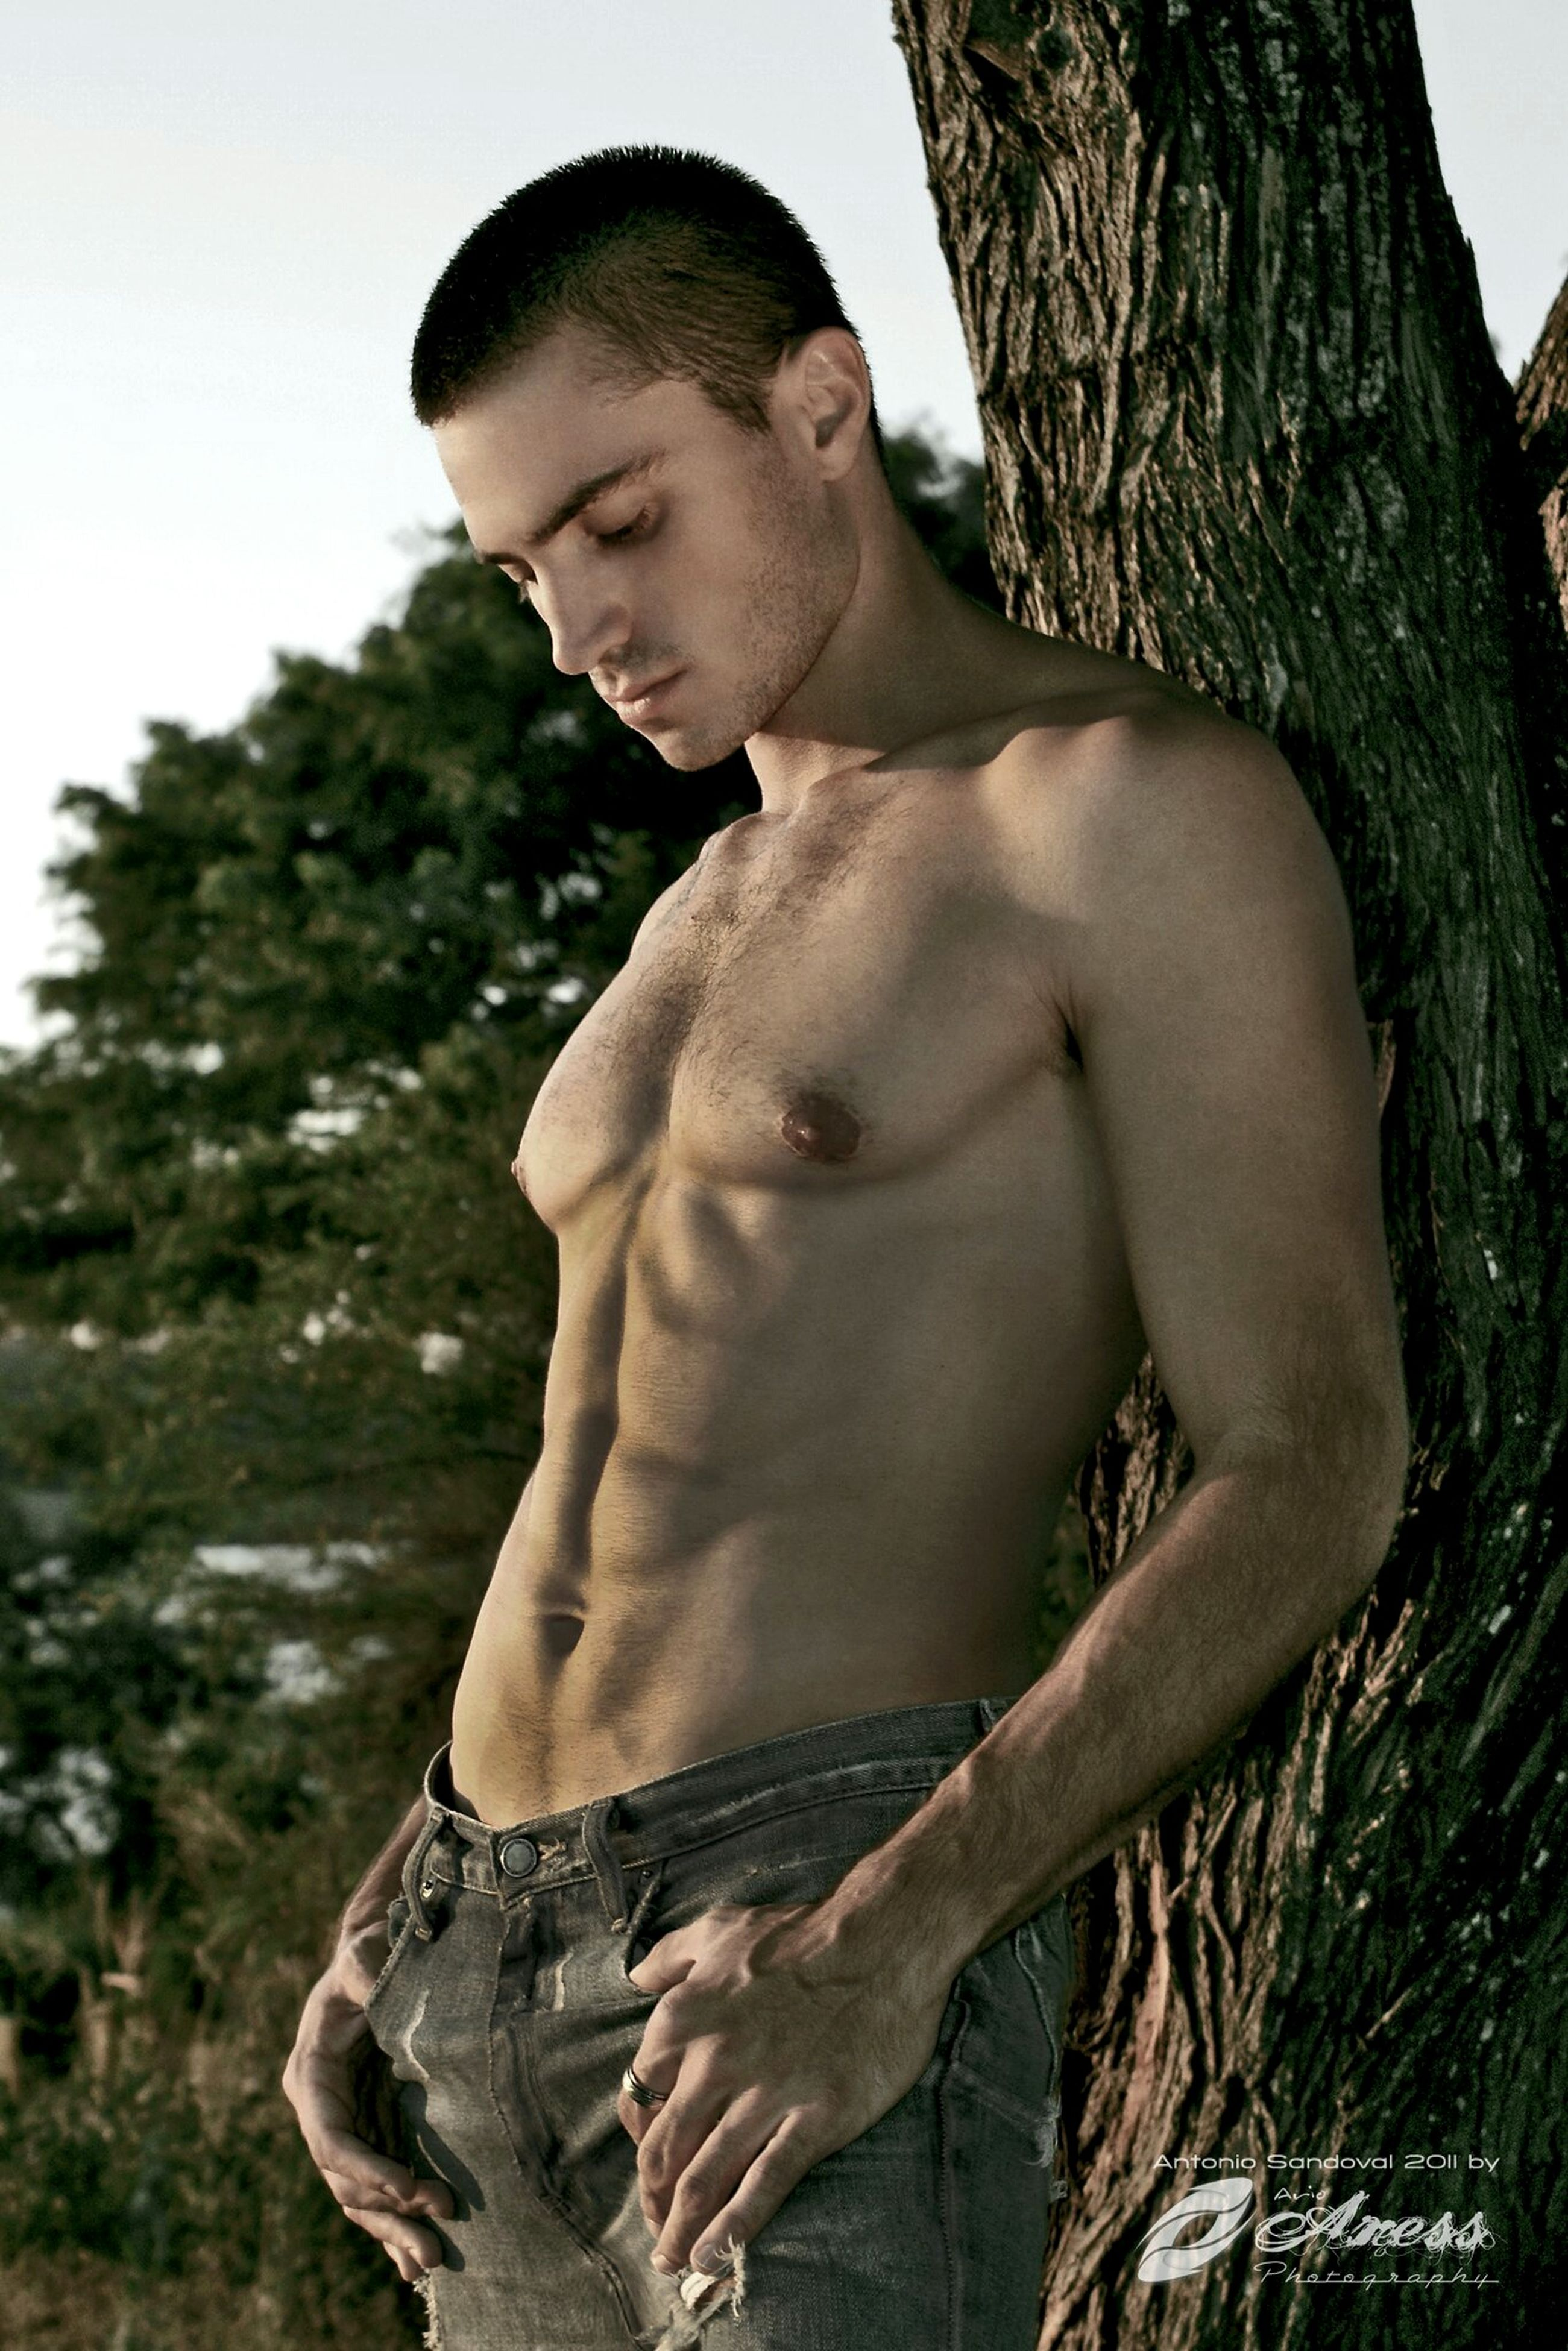 young adult, person, young men, lifestyles, leisure activity, front view, looking at camera, portrait, shirtless, casual clothing, mid adult, tree, low angle view, standing, outdoors, mid adult men, day